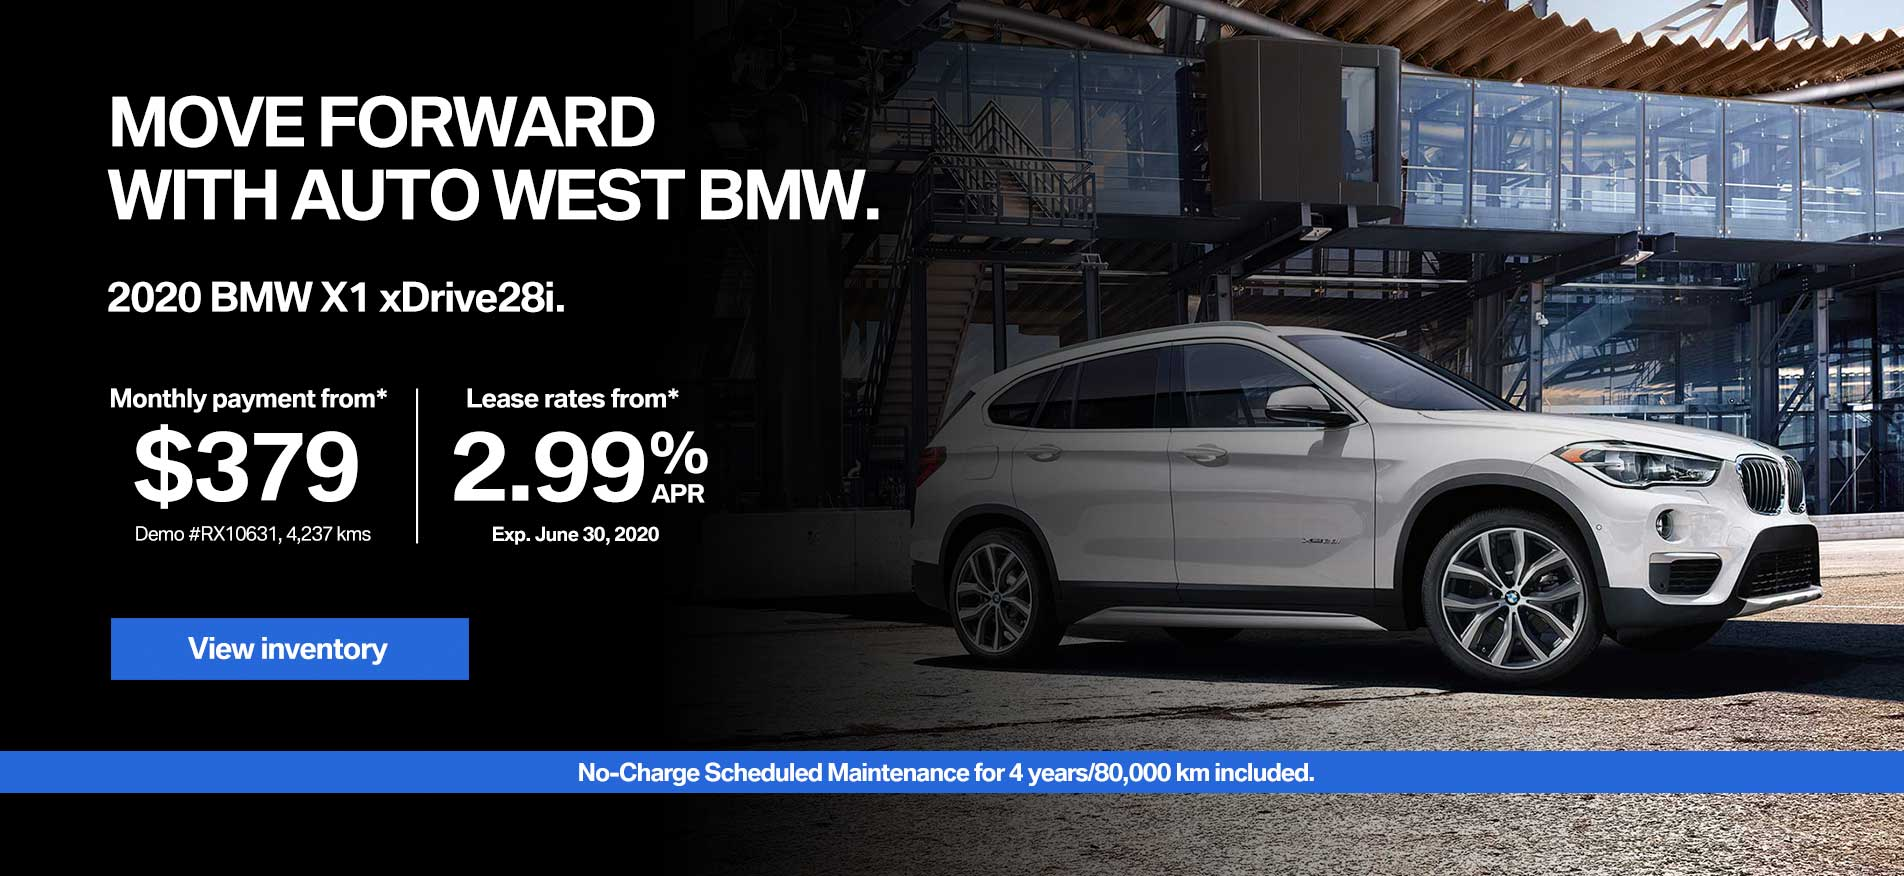 Auto West BMW Lease Payment X1